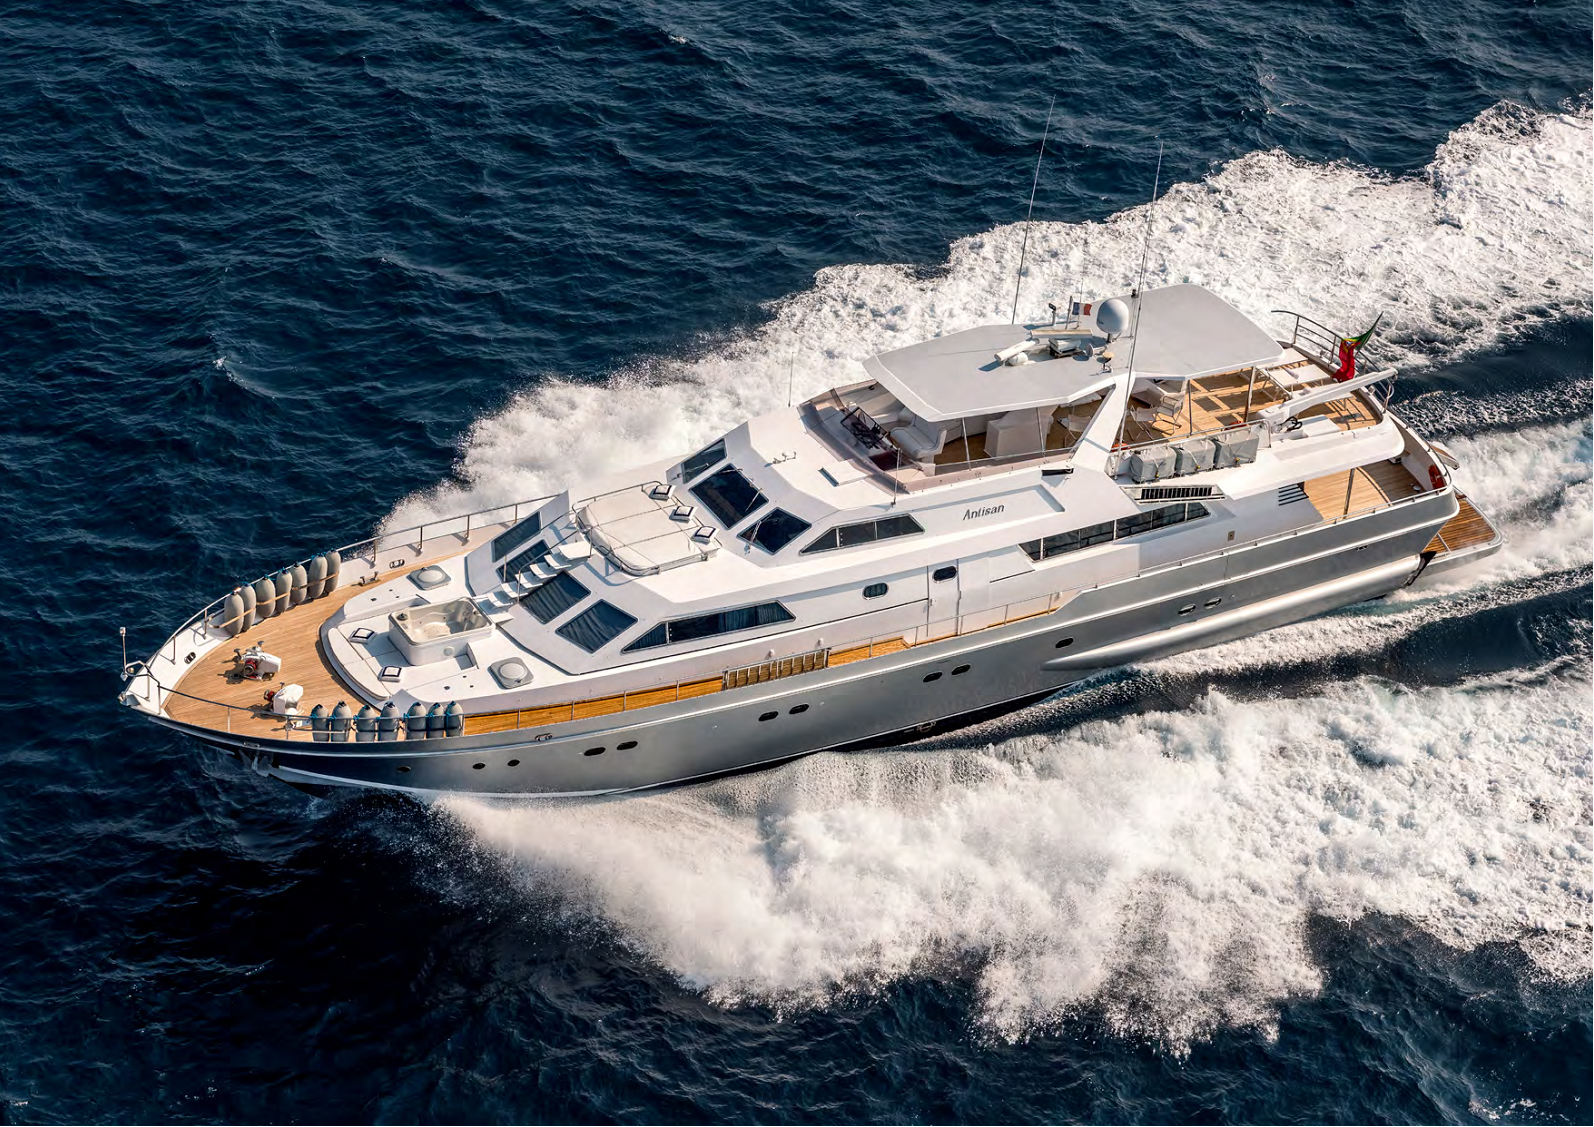 The Alalunga 33m motor yacht